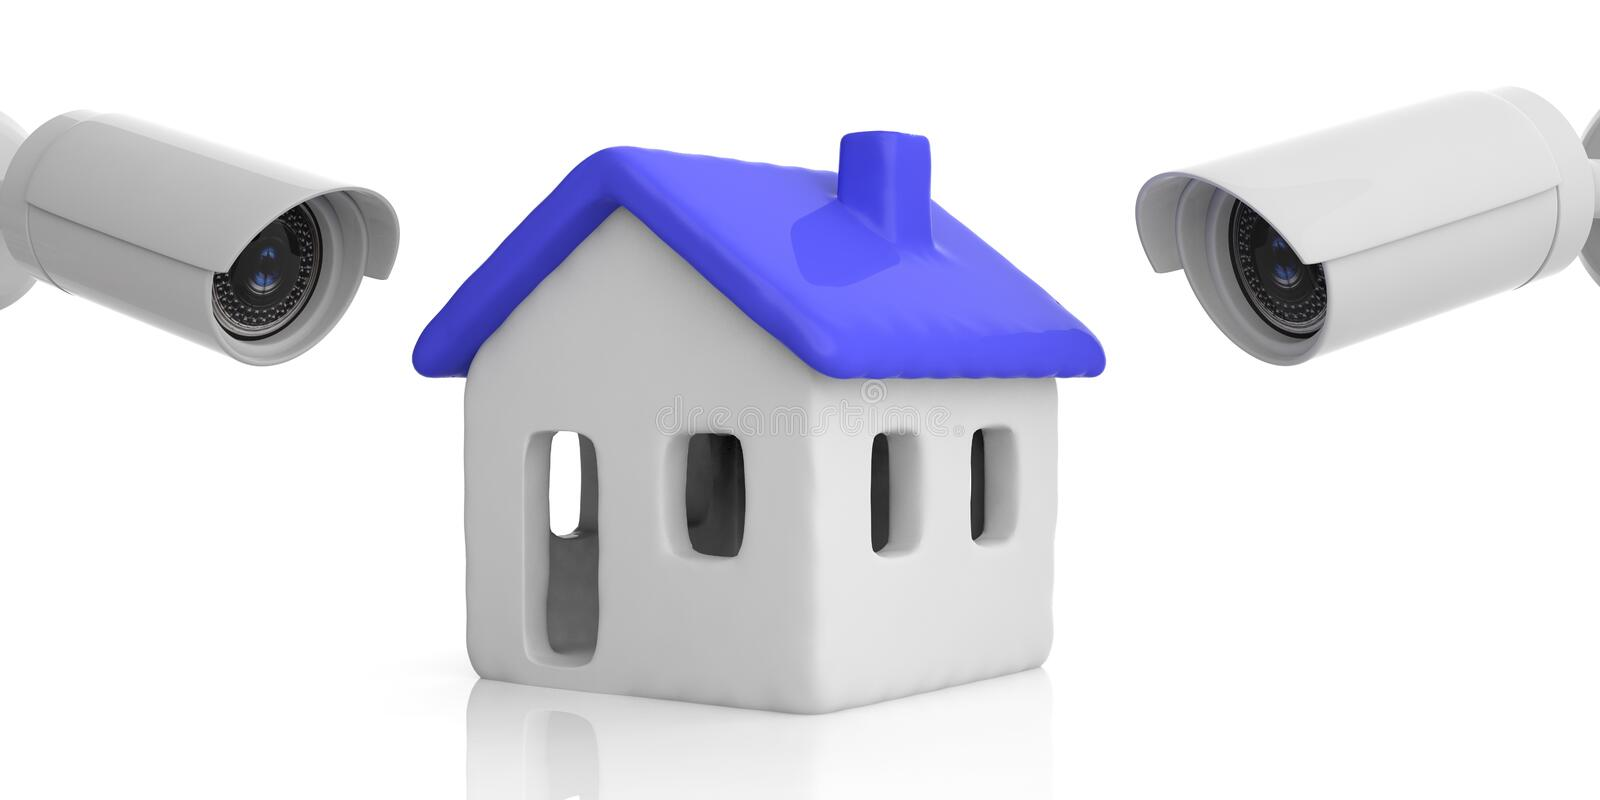 Security cameras watching a house with blue color roof isolated against white background. 3d illustration stock illustration